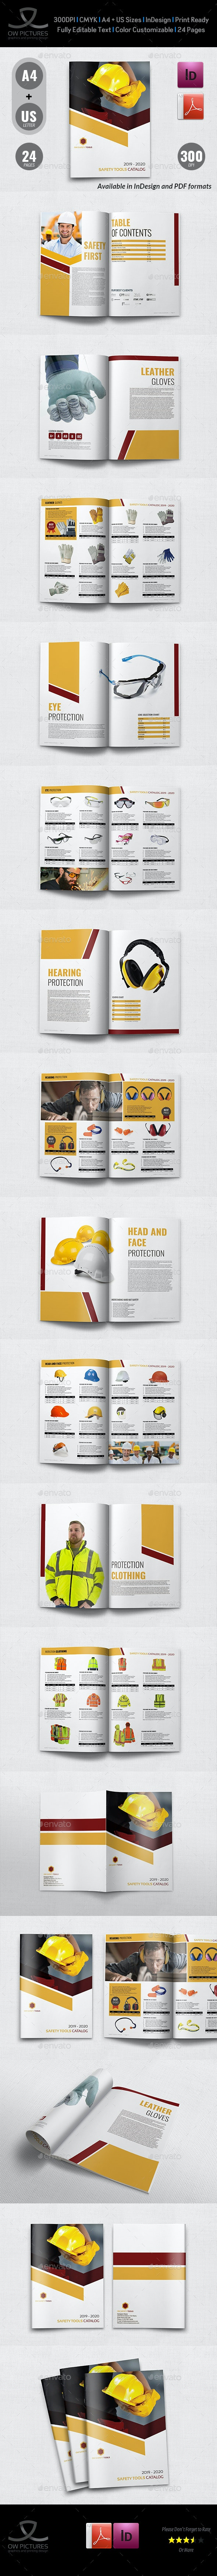 Safety Tools Catalog Brochure Template - 24 Pages - Catalogs Brochures